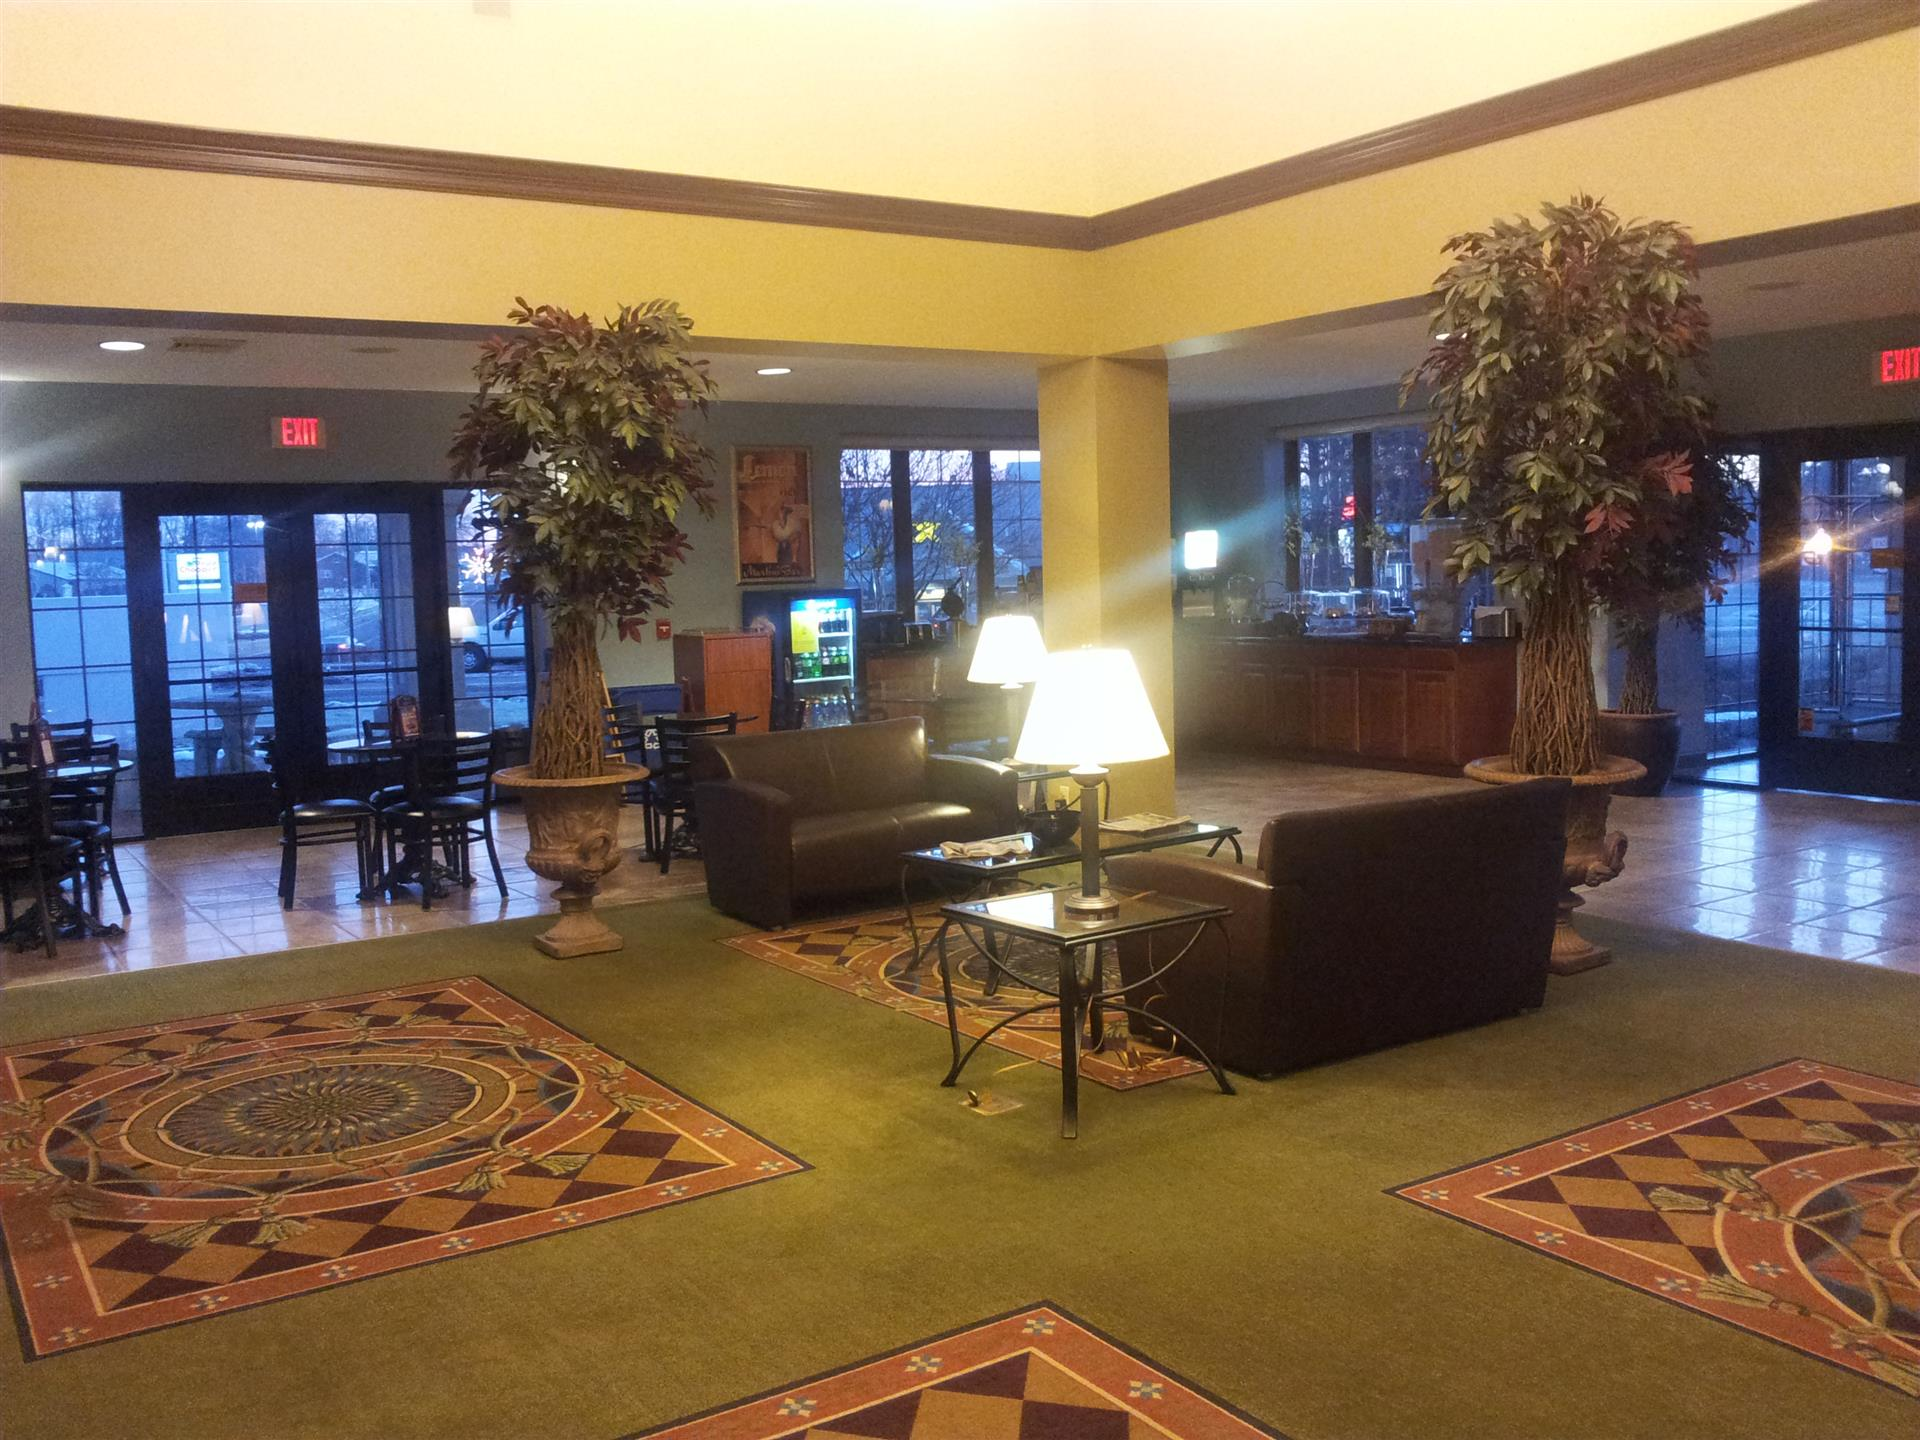 inside lobby with two padded chairs, lamps and carpet